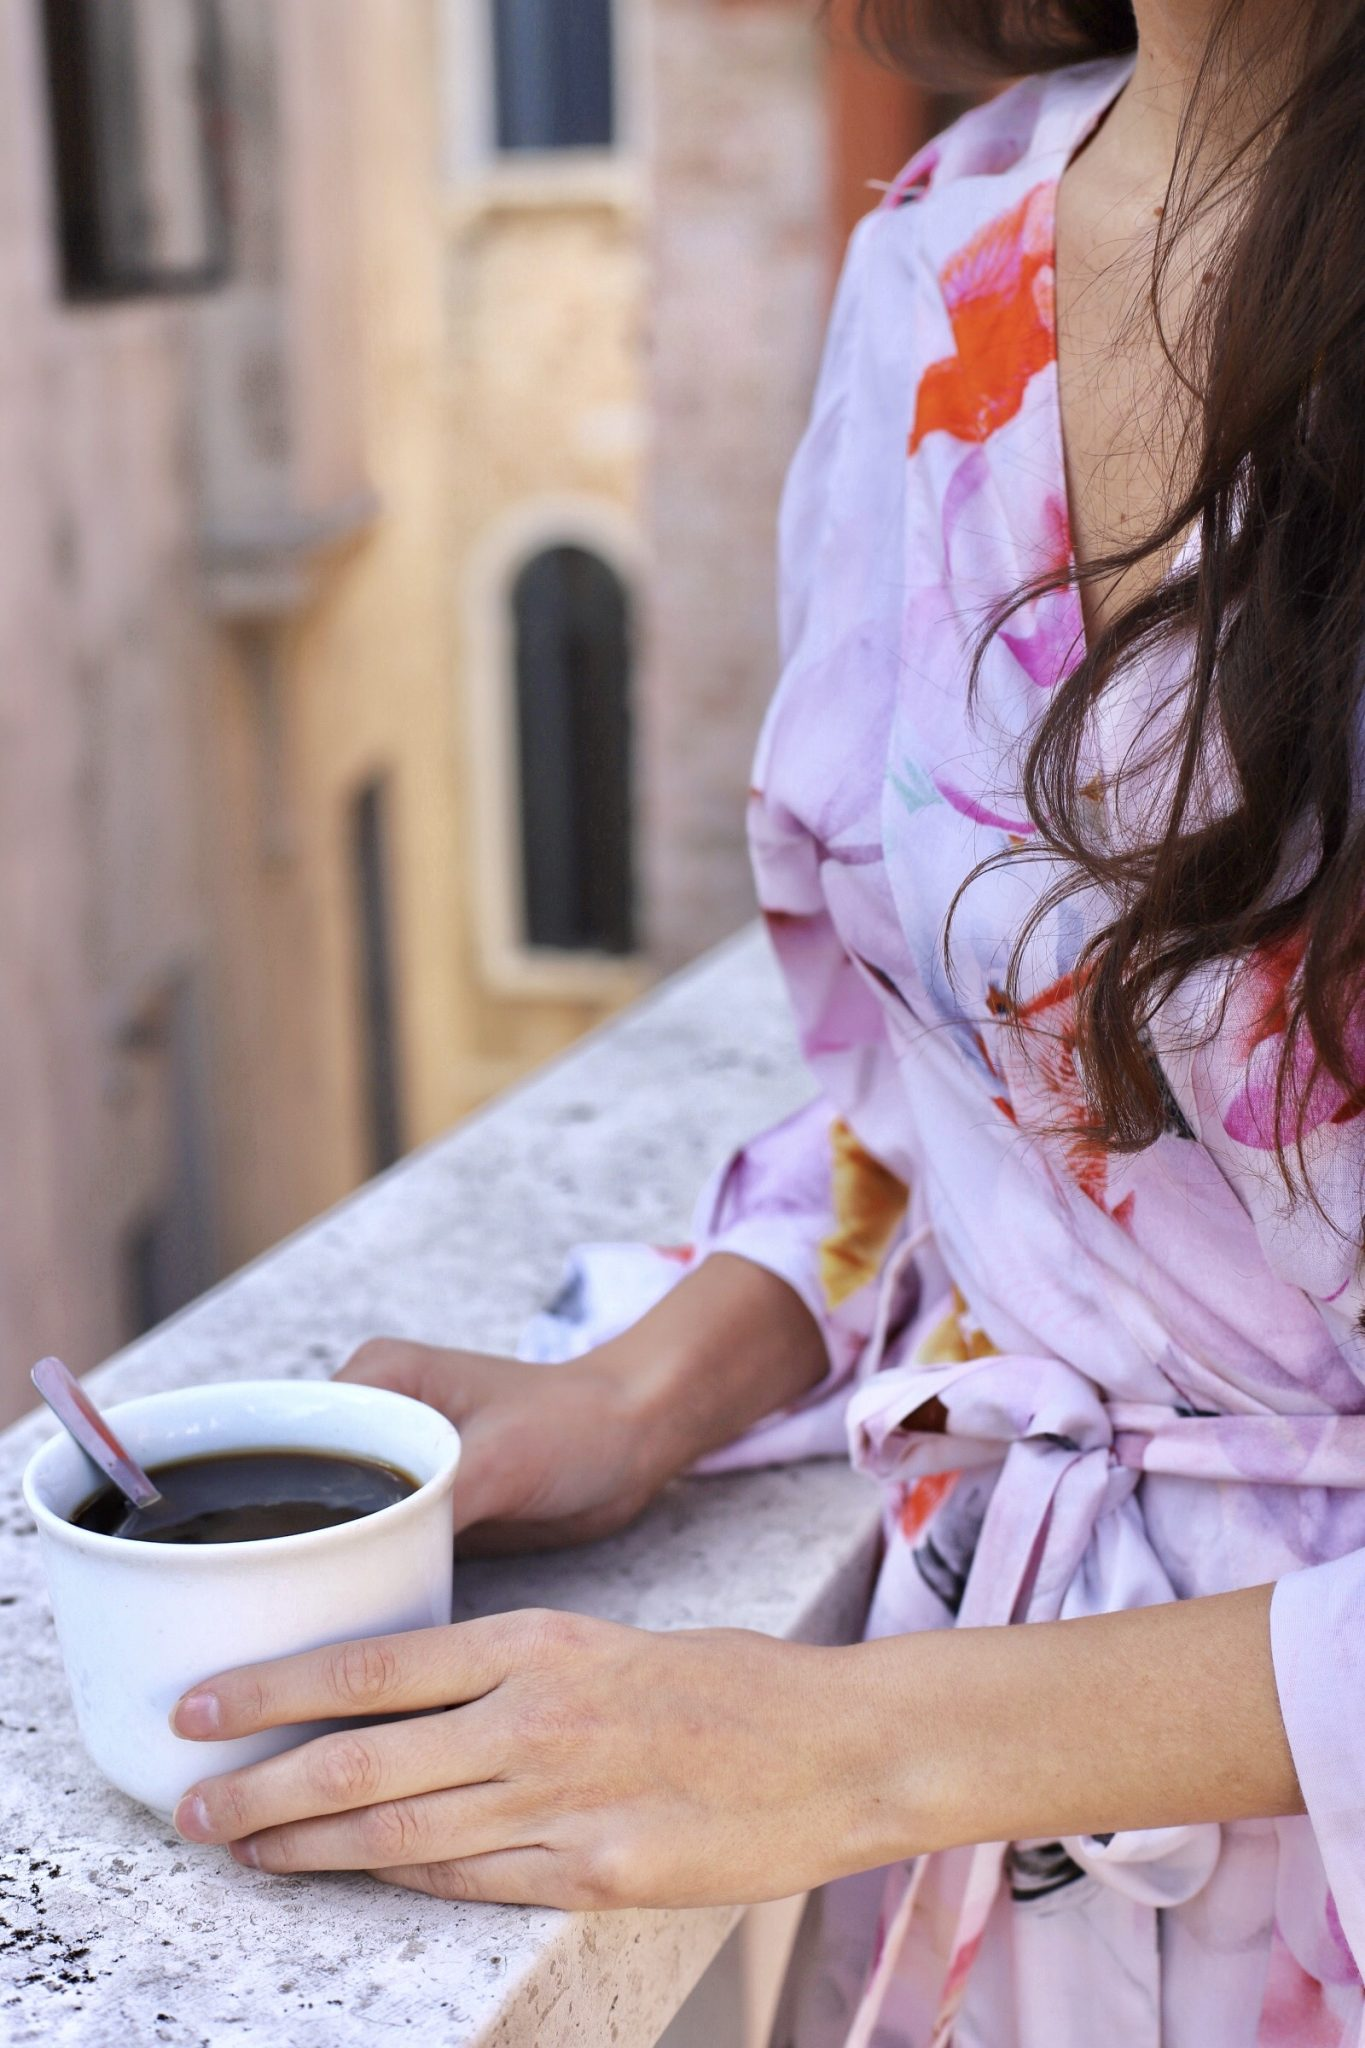 Best friends in Europe, Eurotrip, Venice, Venice Italy, European lifestyle, cute robes for bridesmaids, cute matching robes, floral robes, plum pretty sugar KIMONO STYLE. KNEE LENGTH ROBE. SHANGRI-LA., plum pretty sugar shangri-la kimono style robe, morning coffee, coffeenclothes